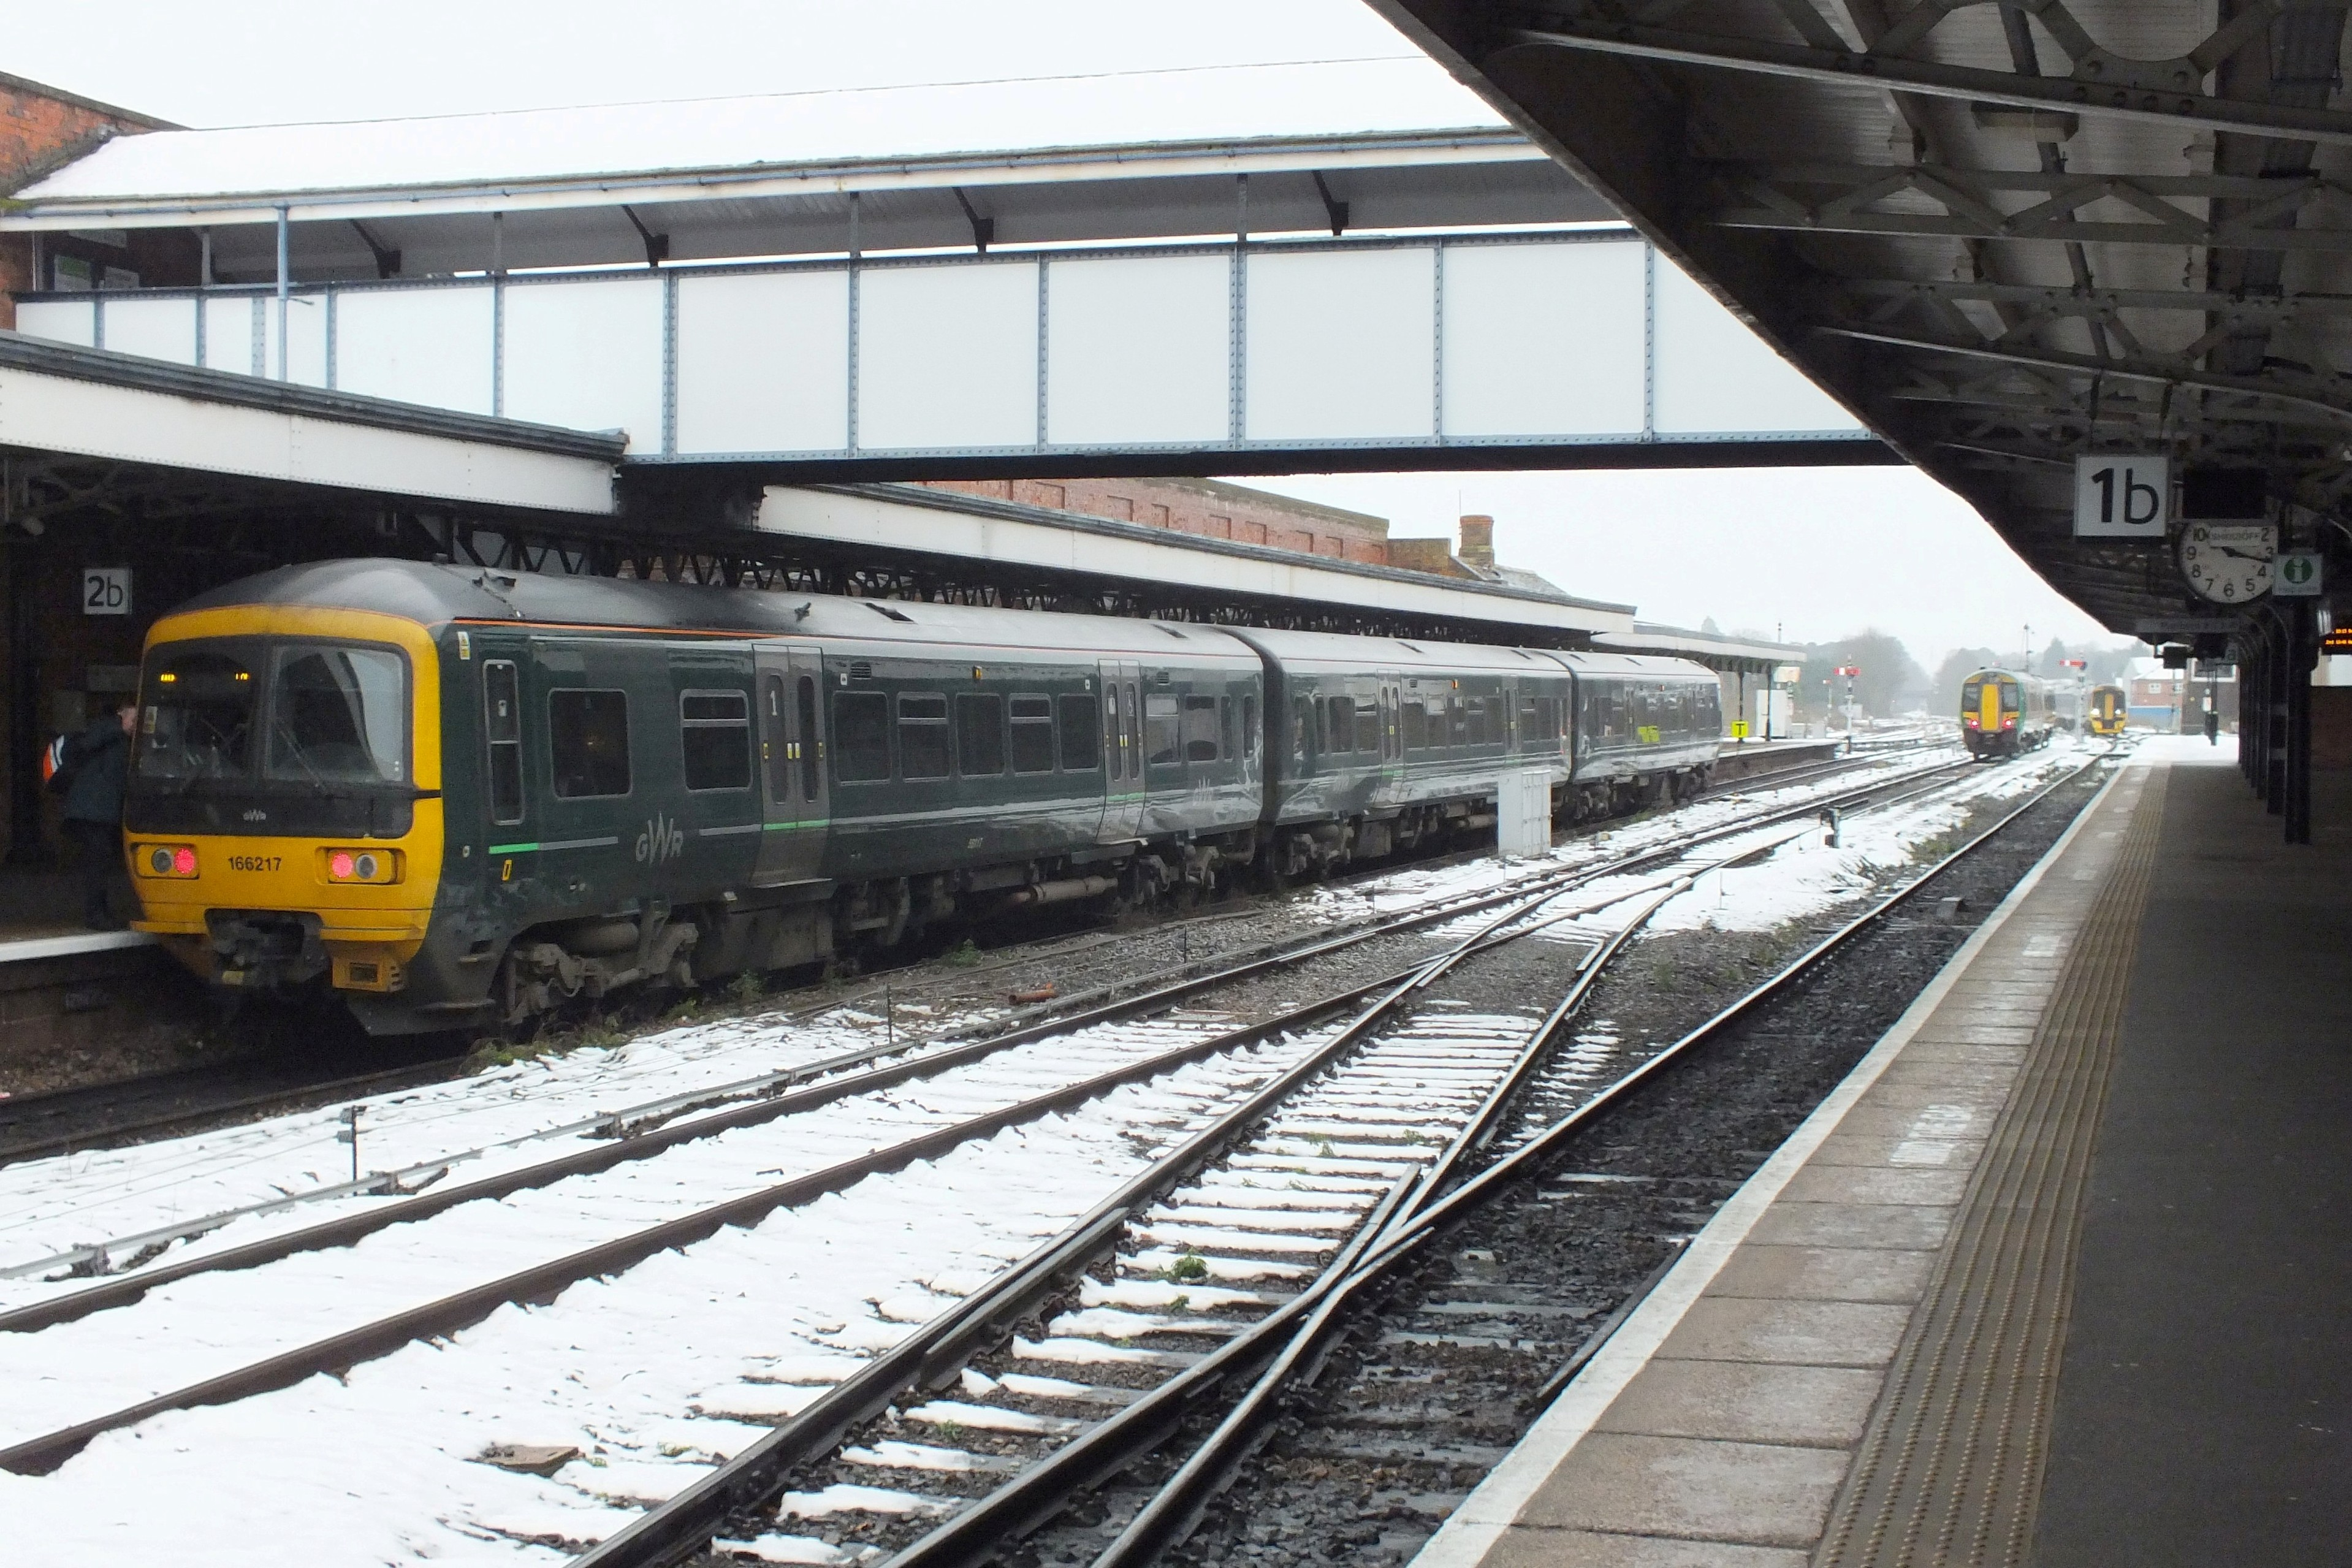 13 December 2017 Shrub Hill 123.jpg